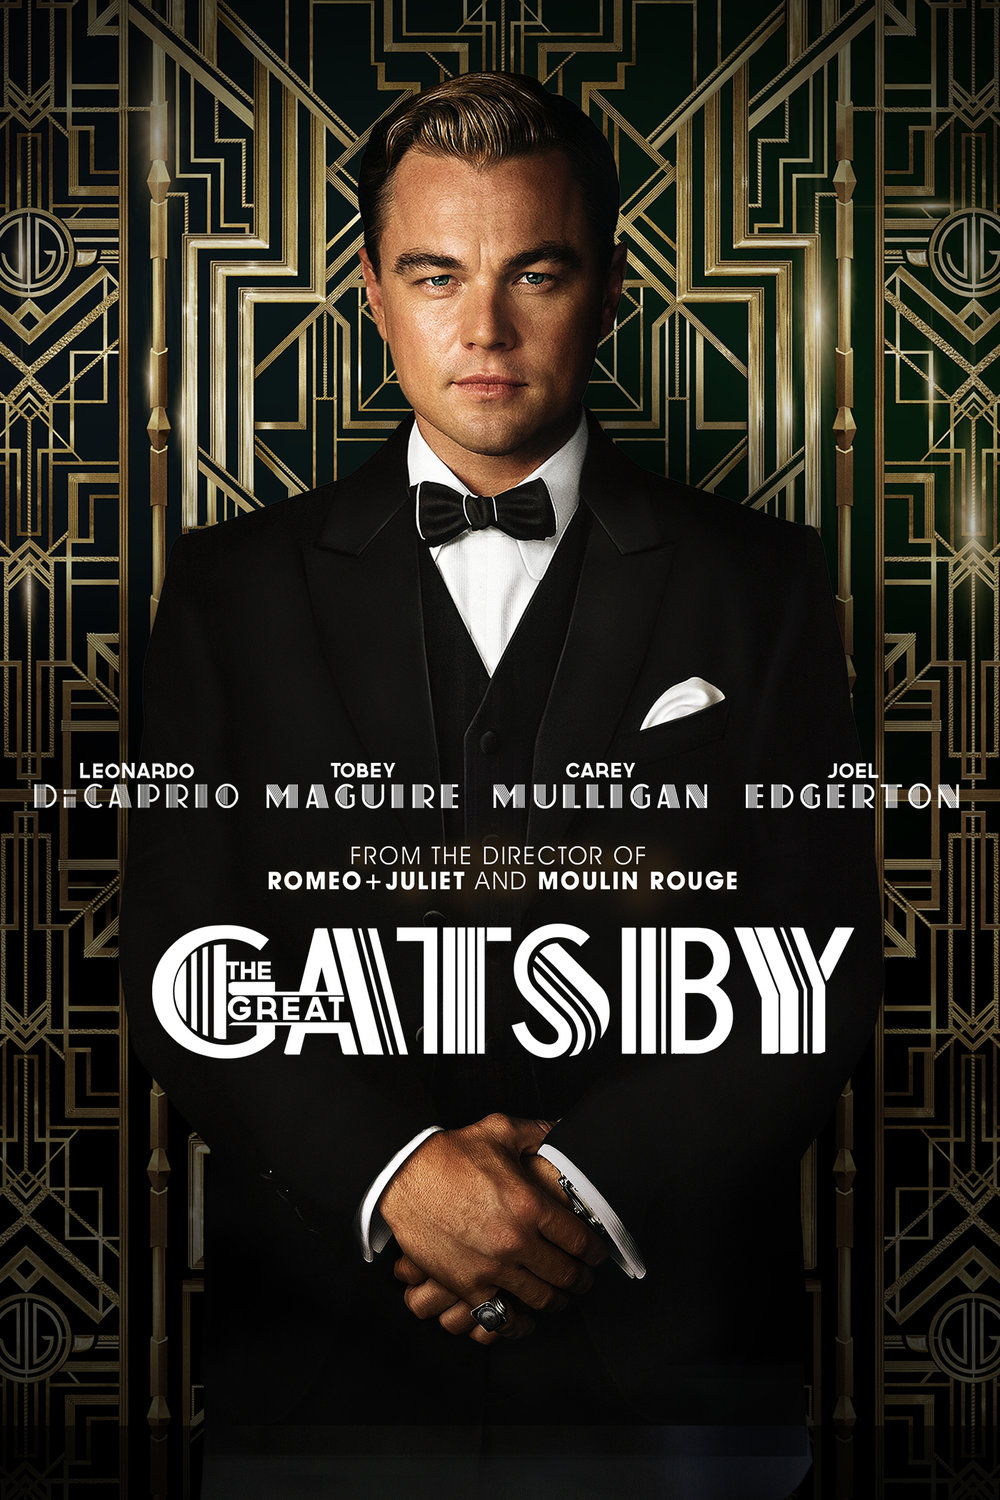 a-great-gatsby.jpg